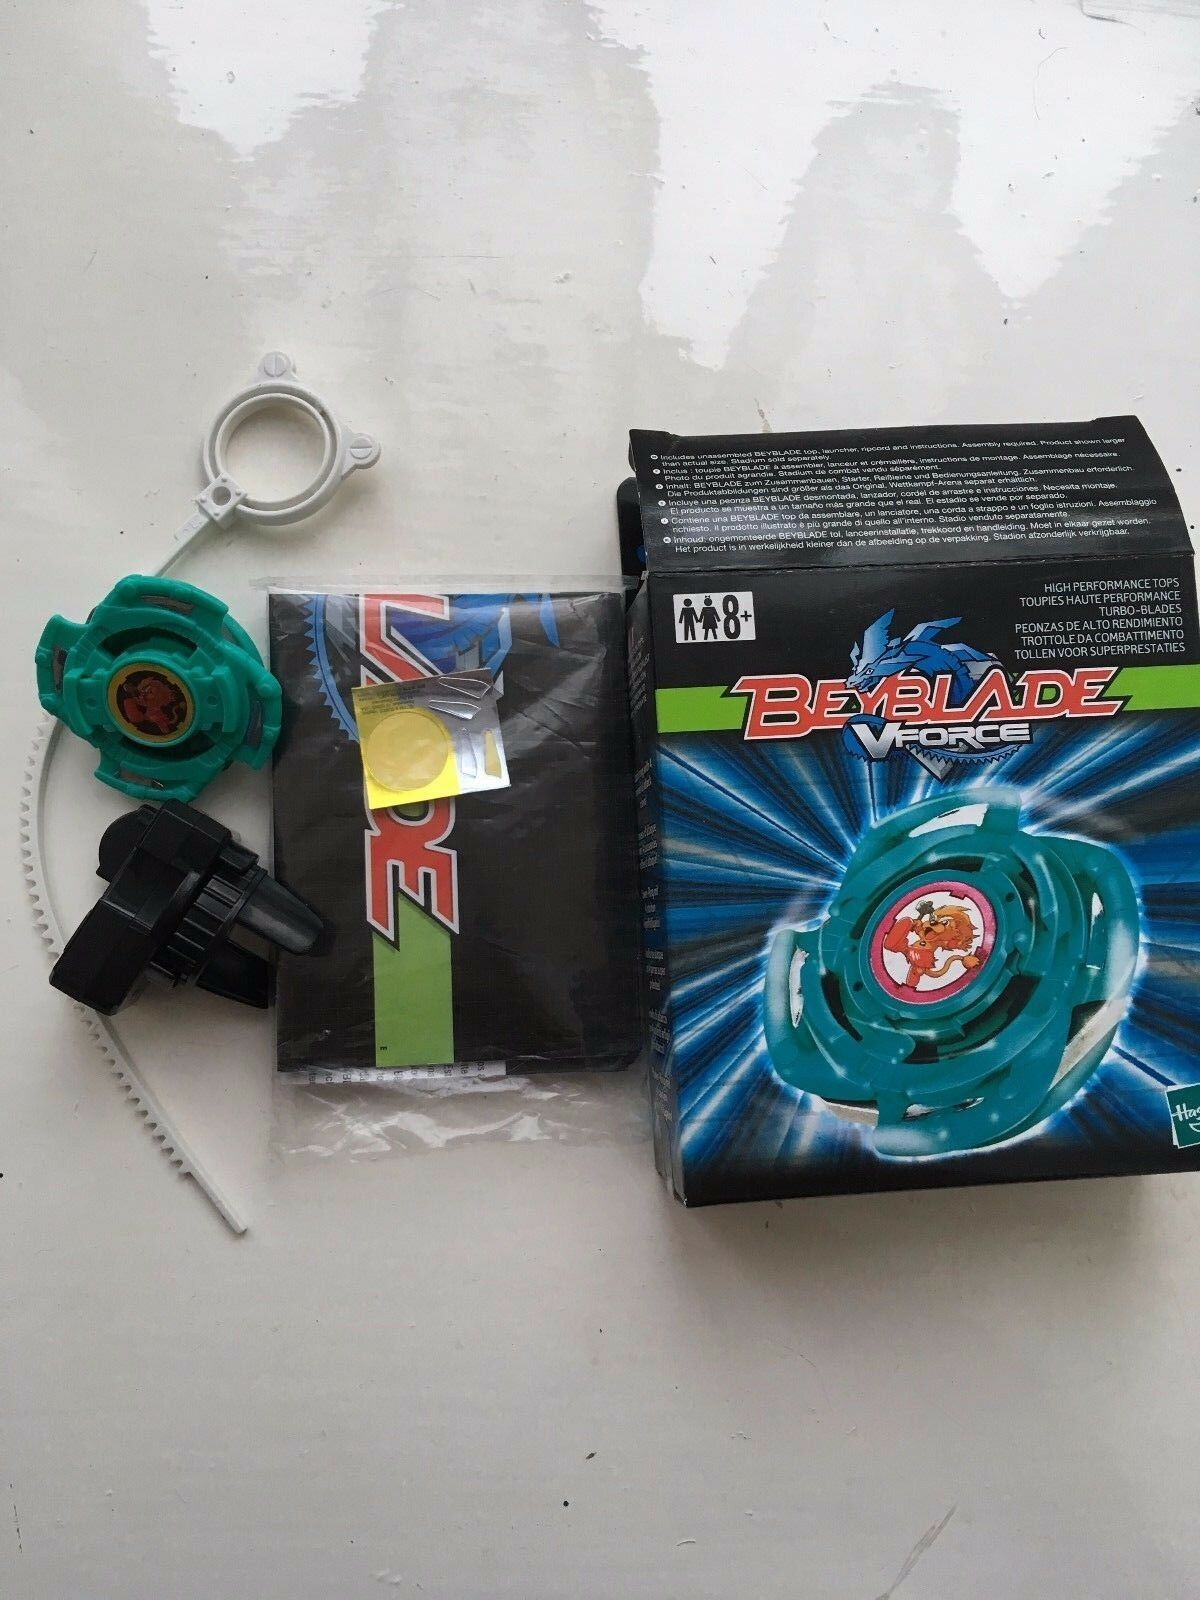 RARE BOXED HASBRO ORIGINAL FIRST GENERATION BISTOOL BEYBLADE COMPLETE